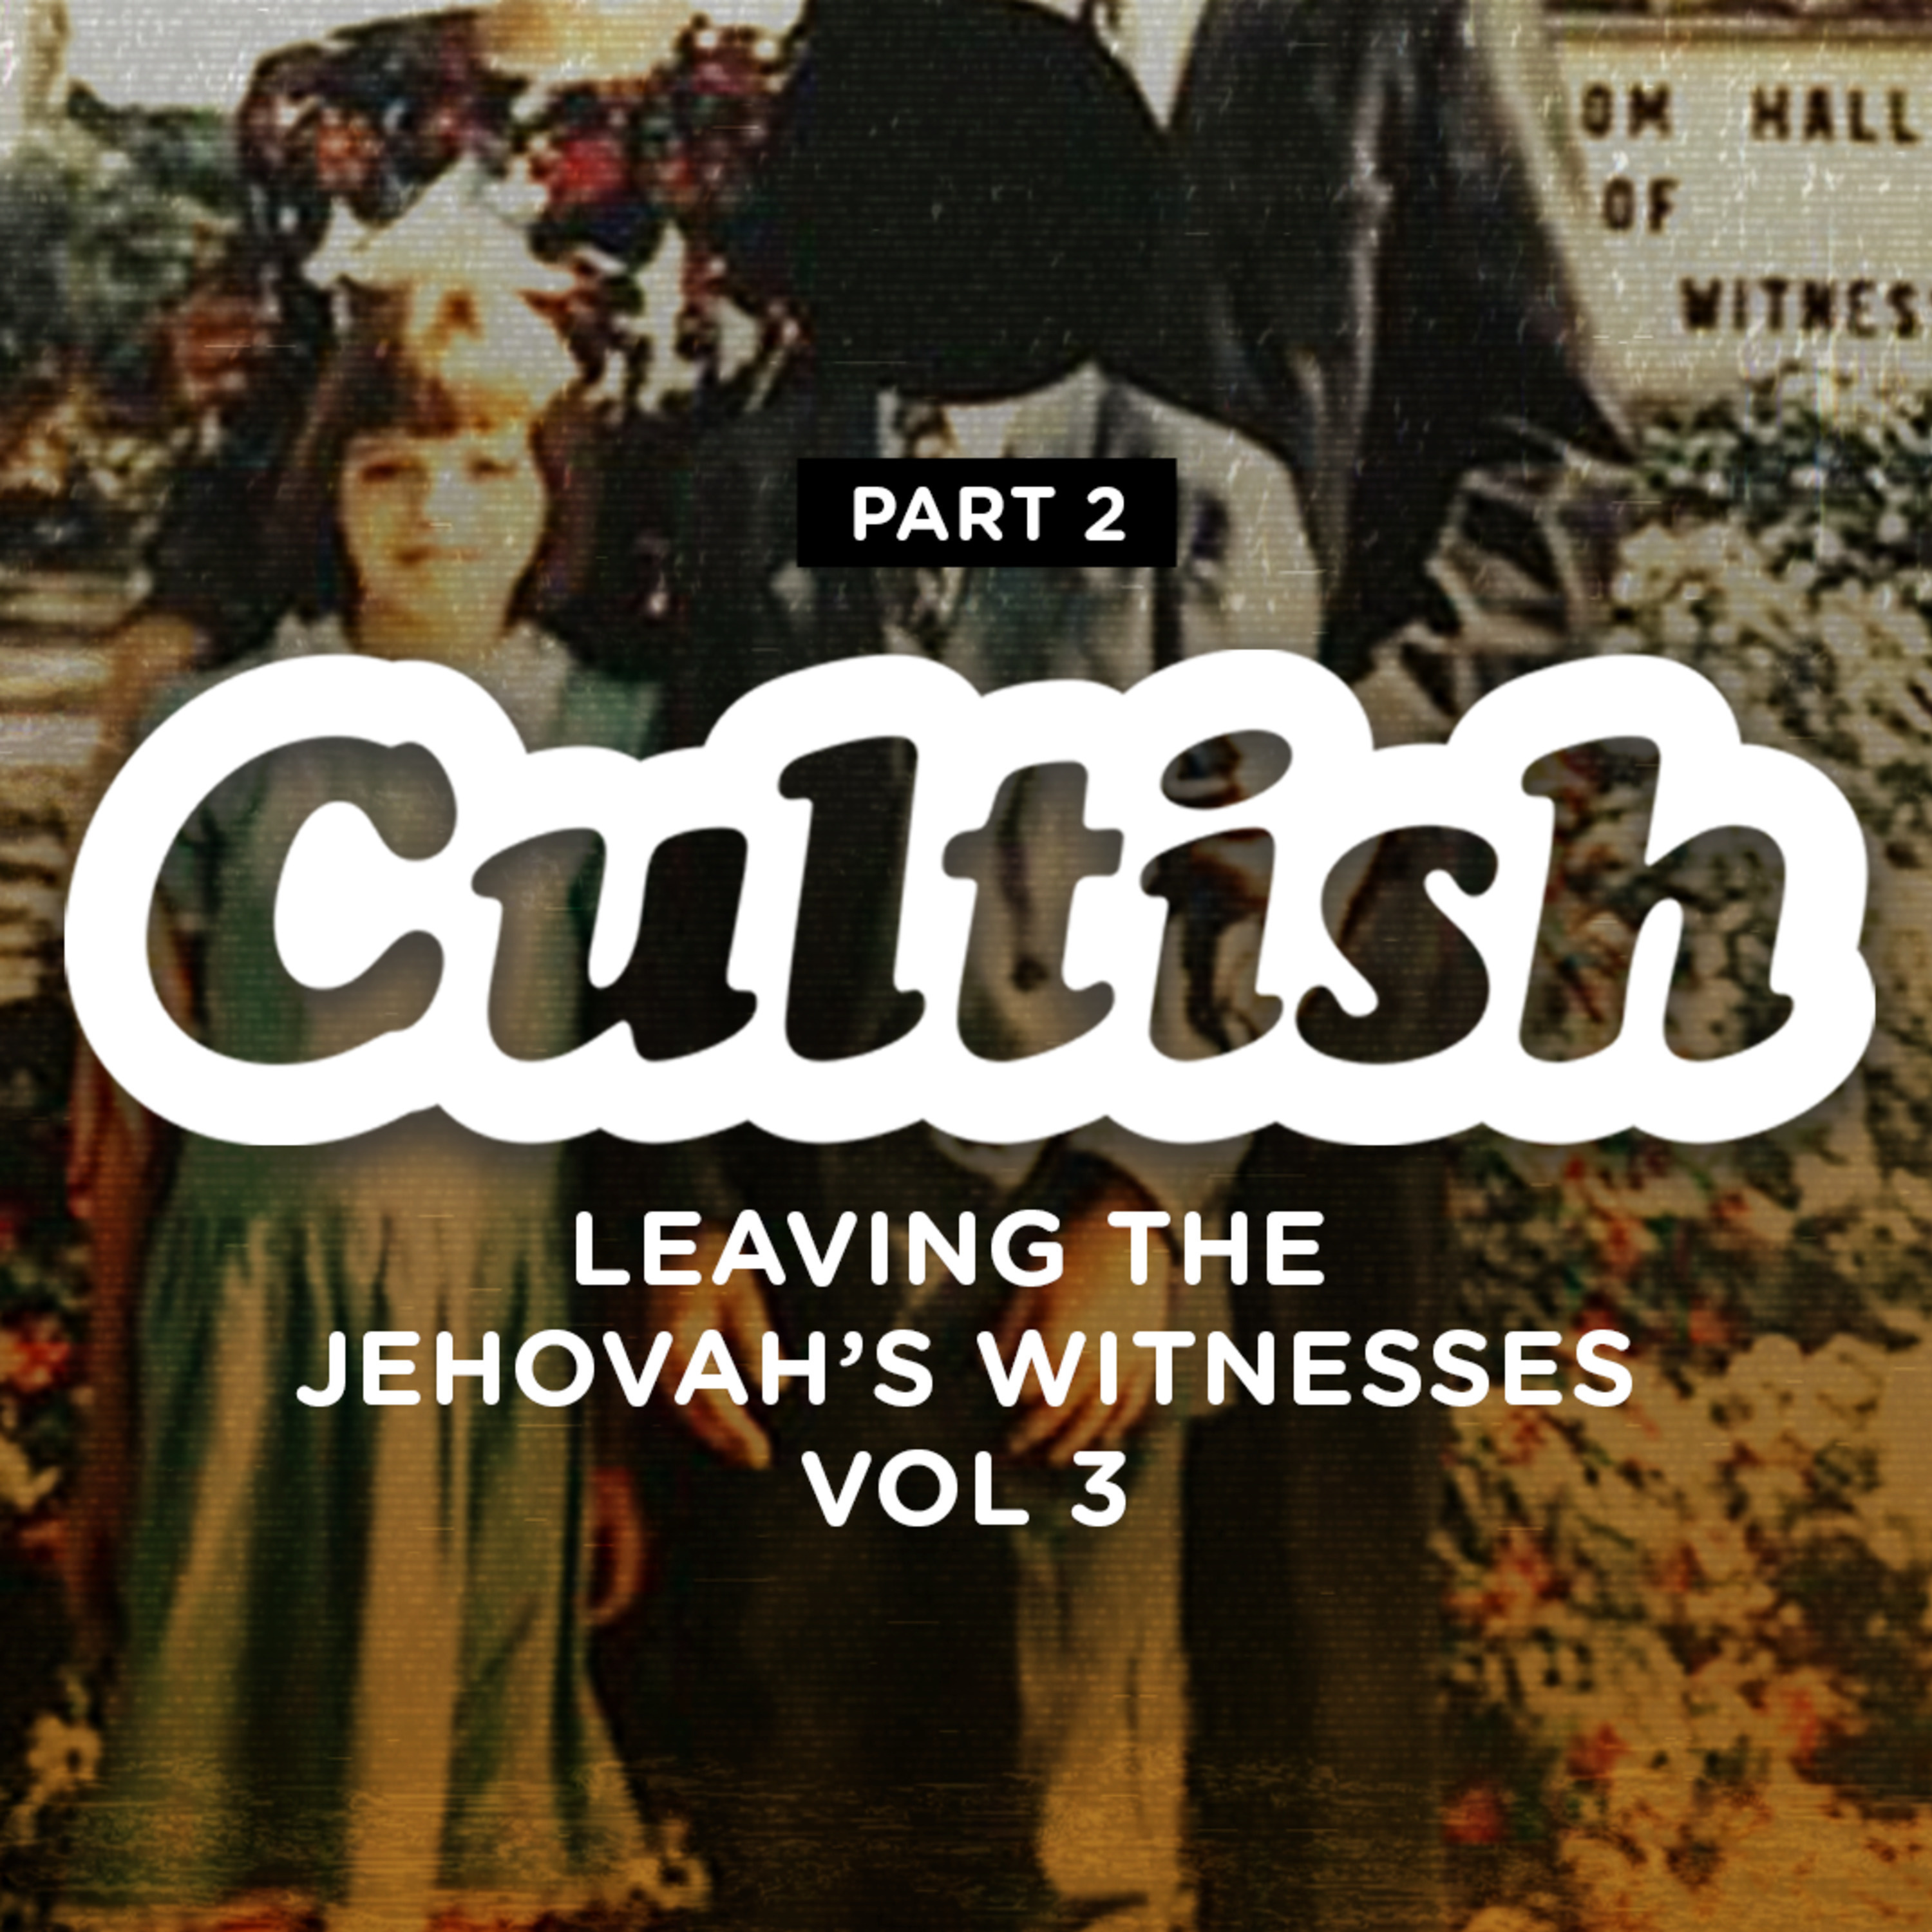 Part 2: Leaving the Jehovah's Witnesses - Vol  3 - Cultish